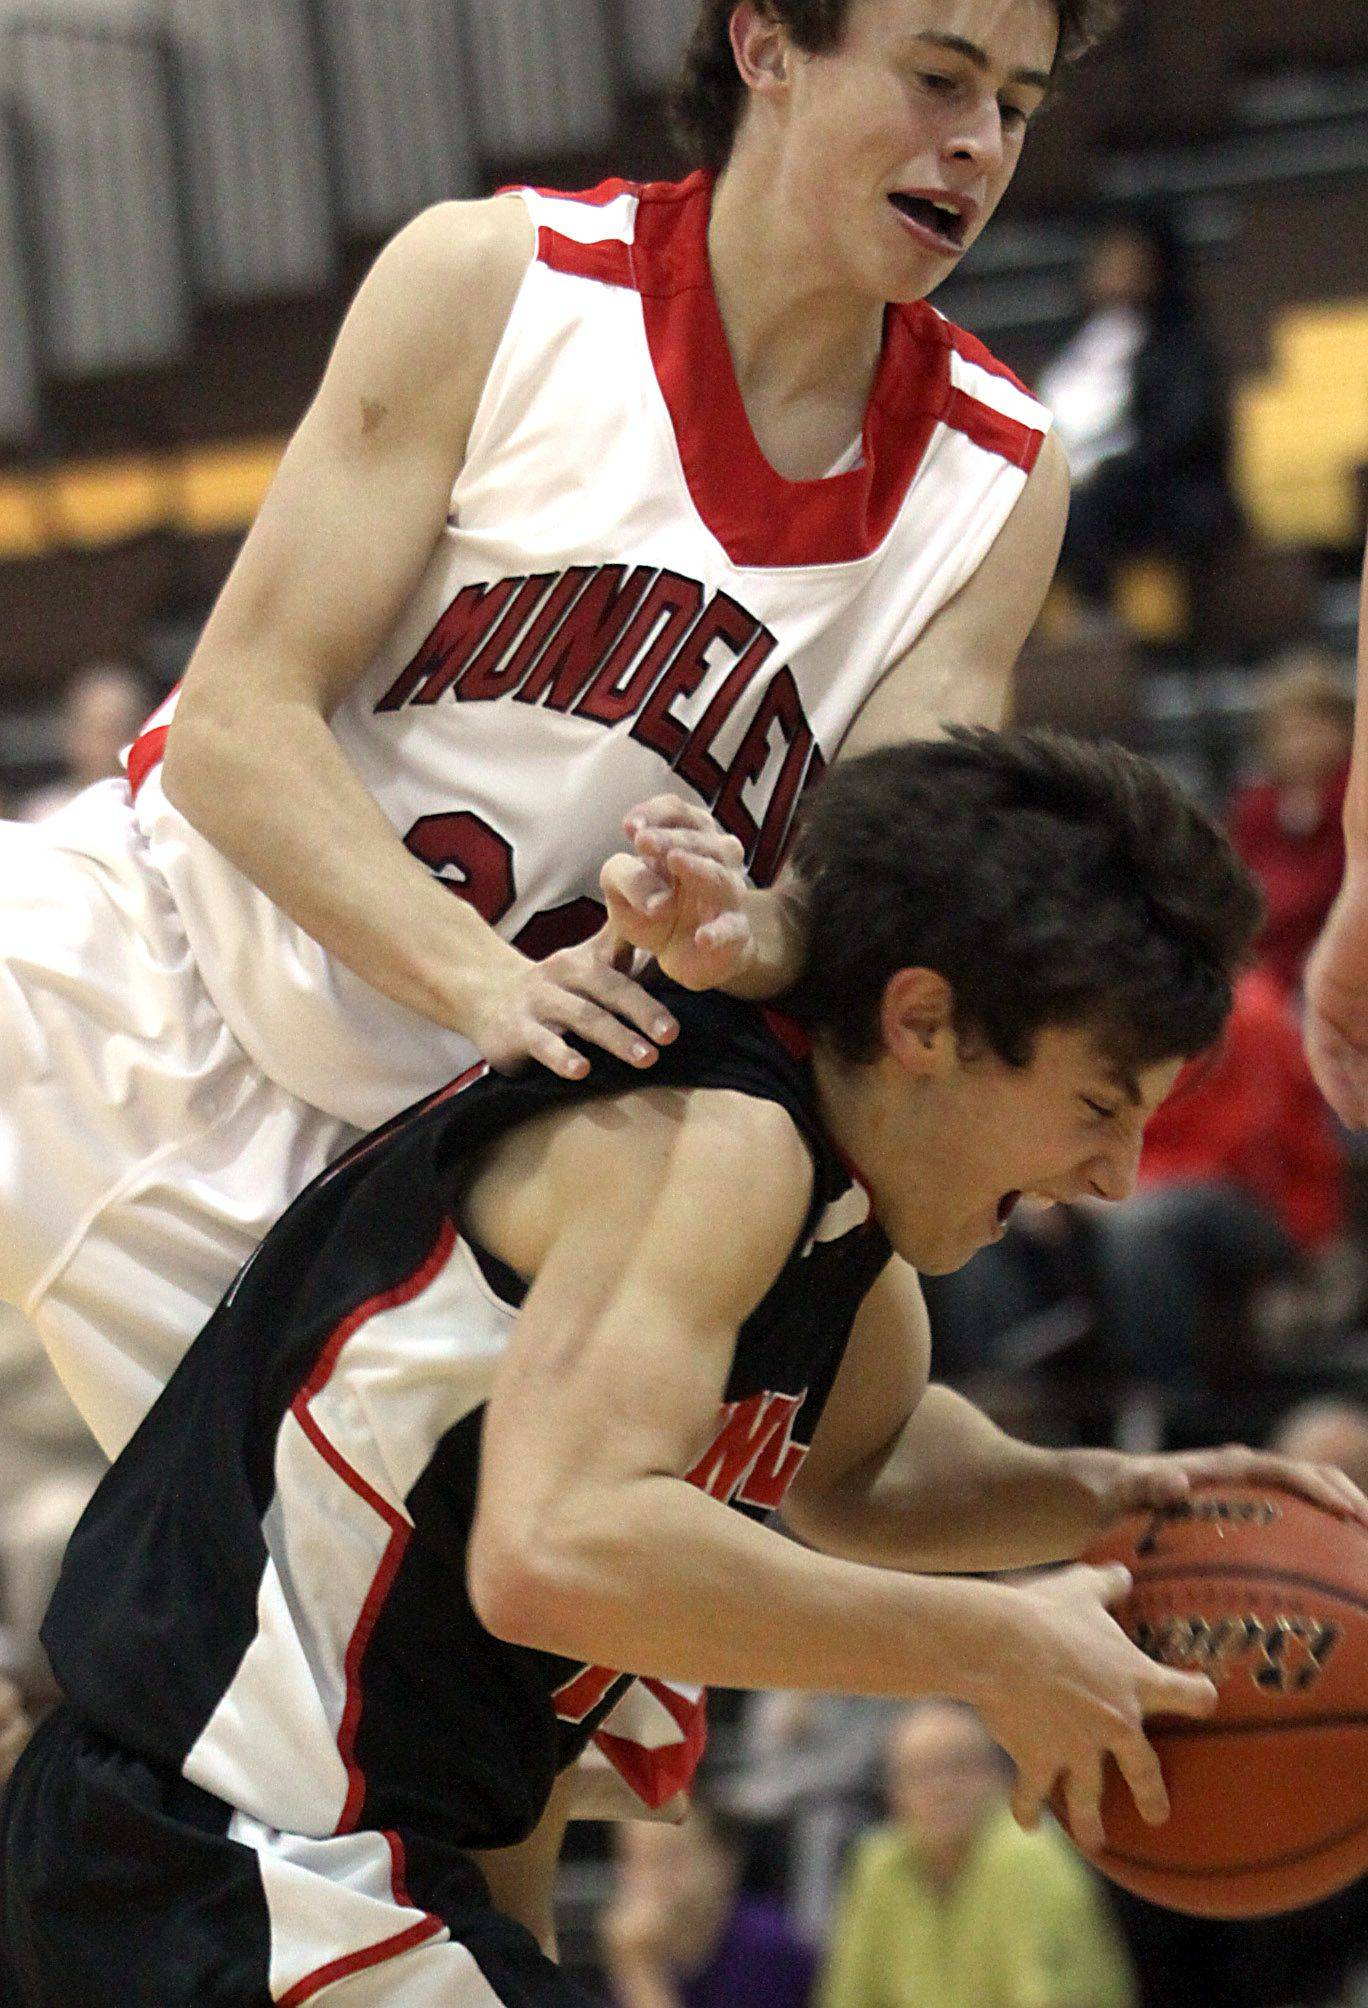 Images: Huntley vs. Mundelein boys basketball